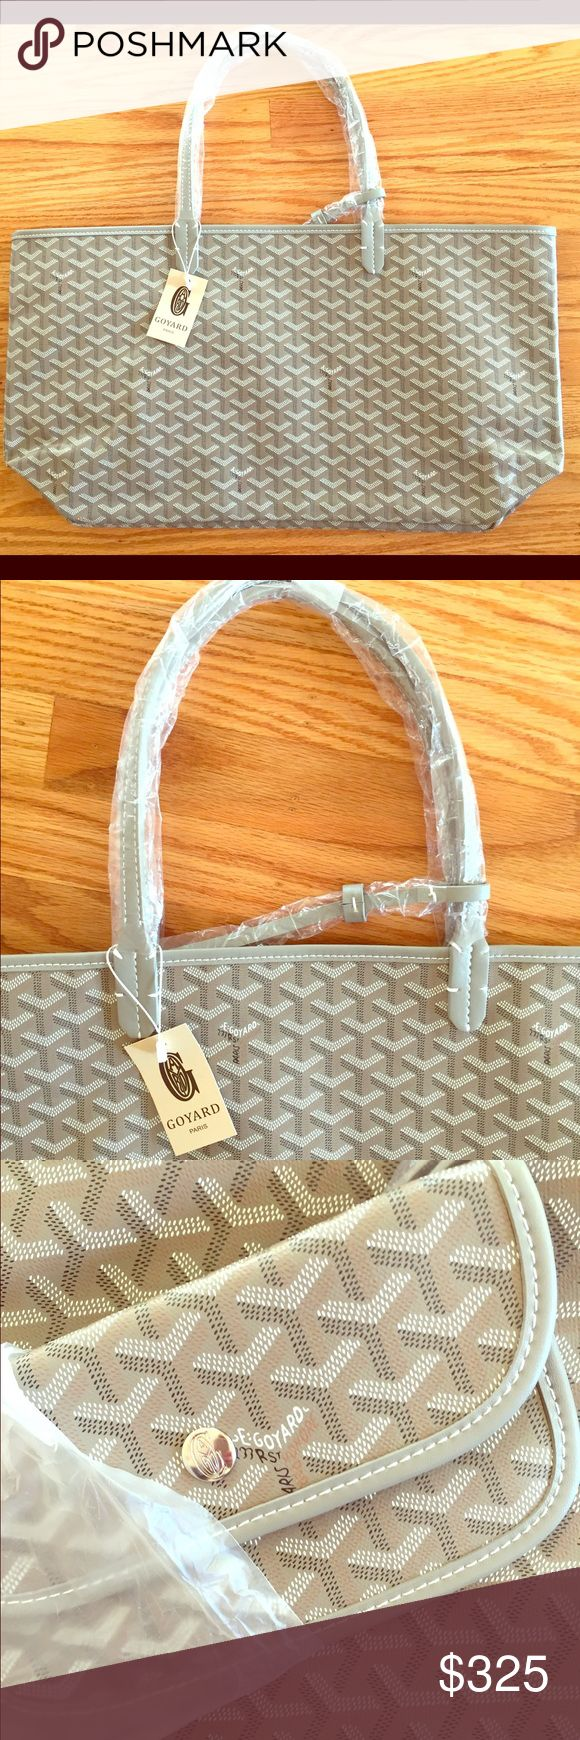 Goyard tote, Color: grey + tan, Size: GM (large) Brand new never worn, in packing, Goyard tote. Goyard Bags Totes